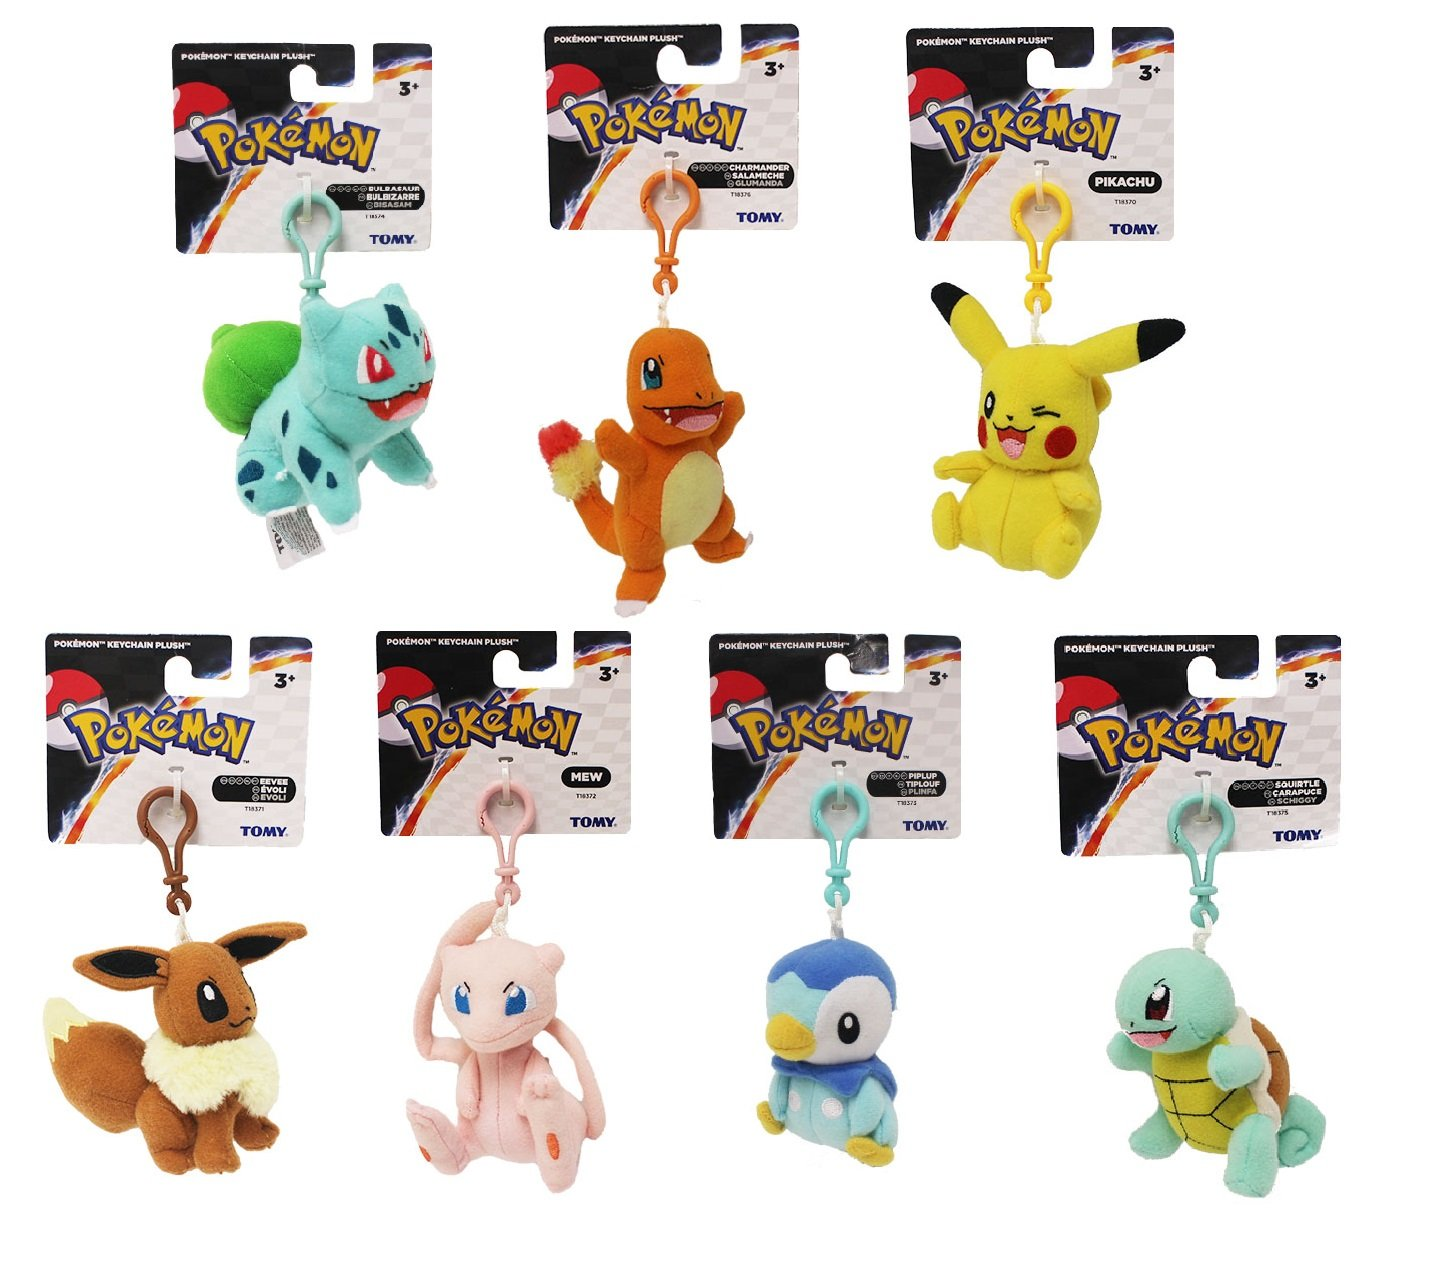 Pokemon Original Plush Toy Set of 7 Includes: Pikachu . Eevee , Charmander , Squirtle , Mew , Piplup & Bulbasaur by Pokemon